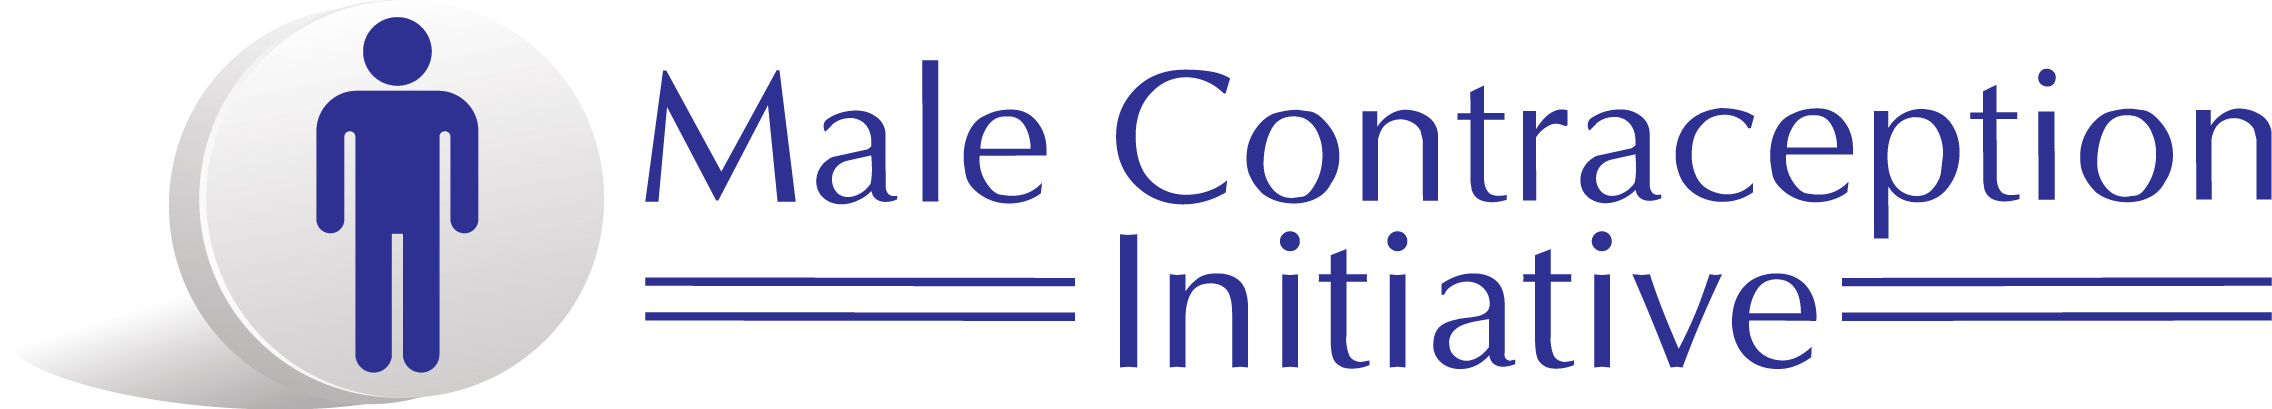 Male Contraception Initiative Logo